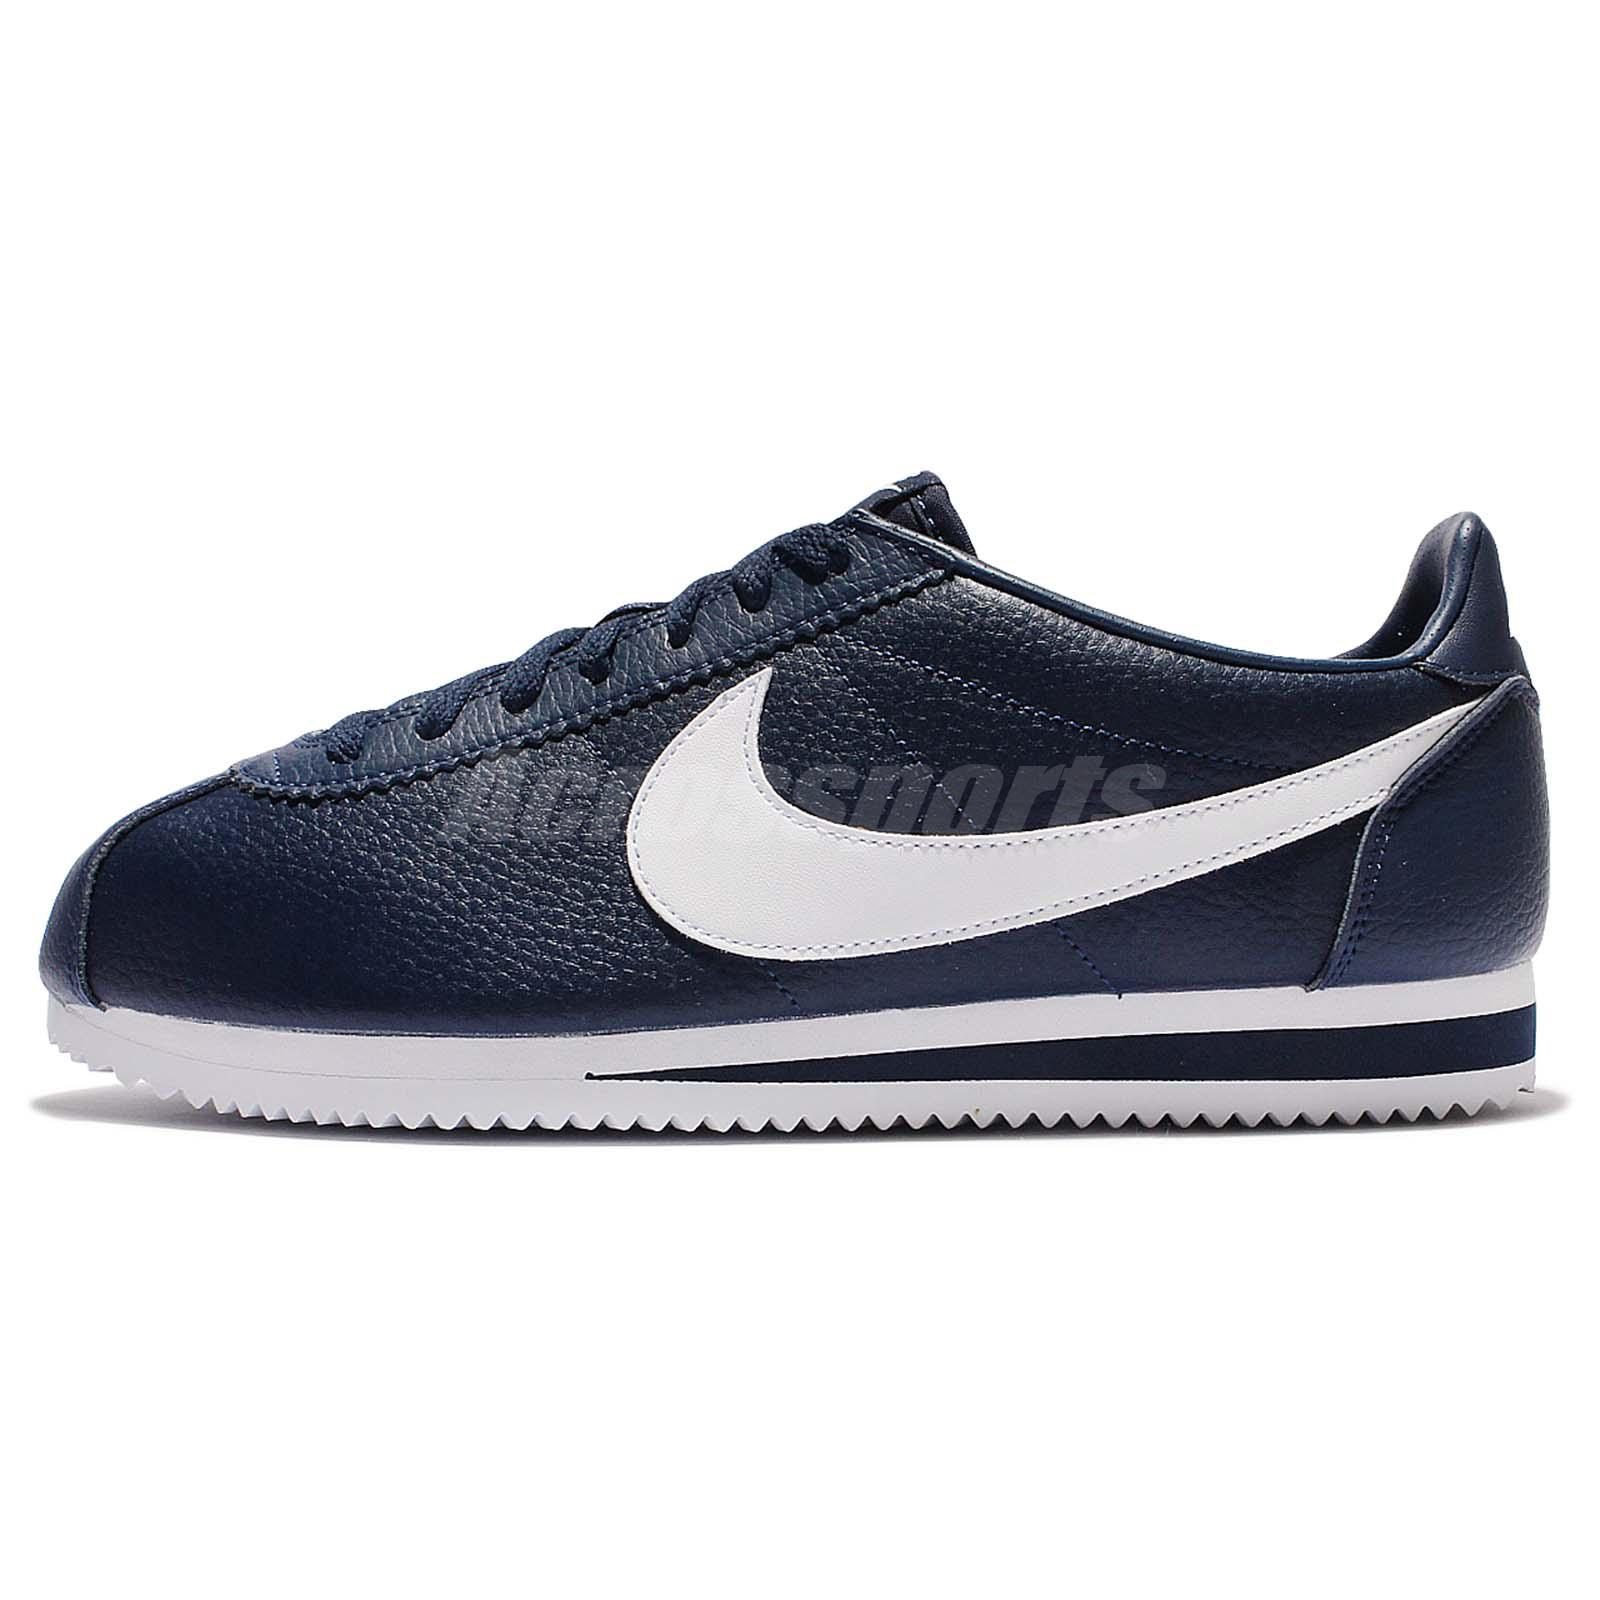 Nike Classic Cortez Leather Midnight Navy White Men Shoes Sneakers  749571-414